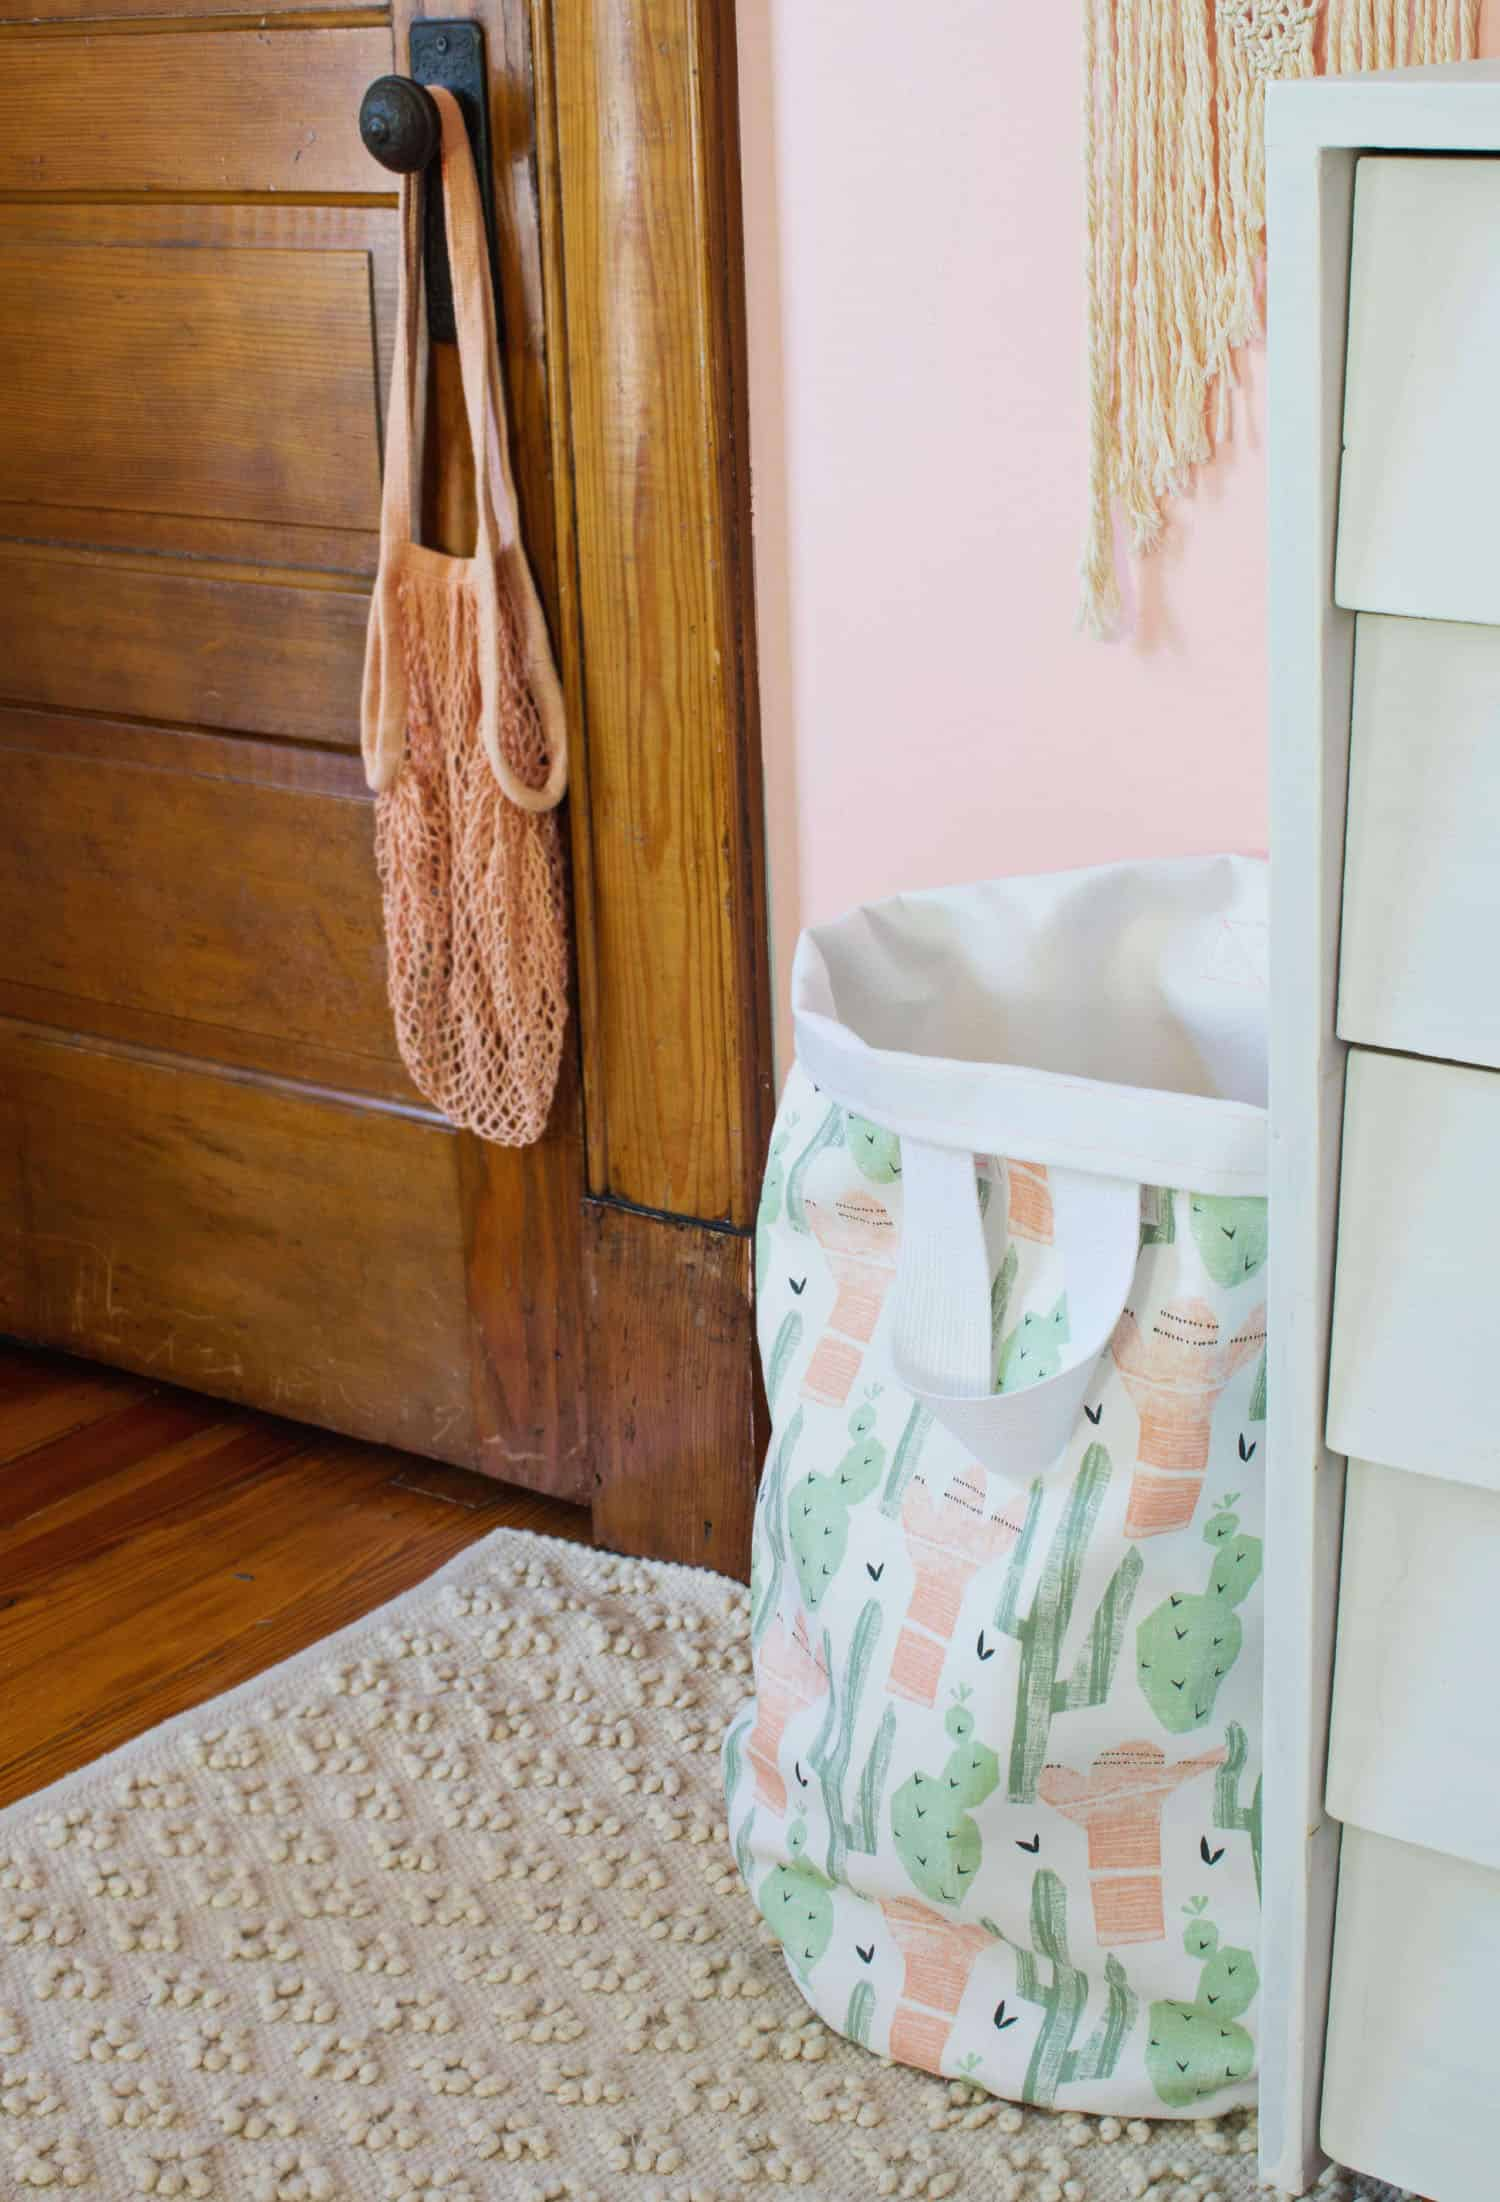 Fold the top edge of your basket over and find the perfect spot for it! I find hanging it from a doorknob works for those who enjoy a challenge when ...